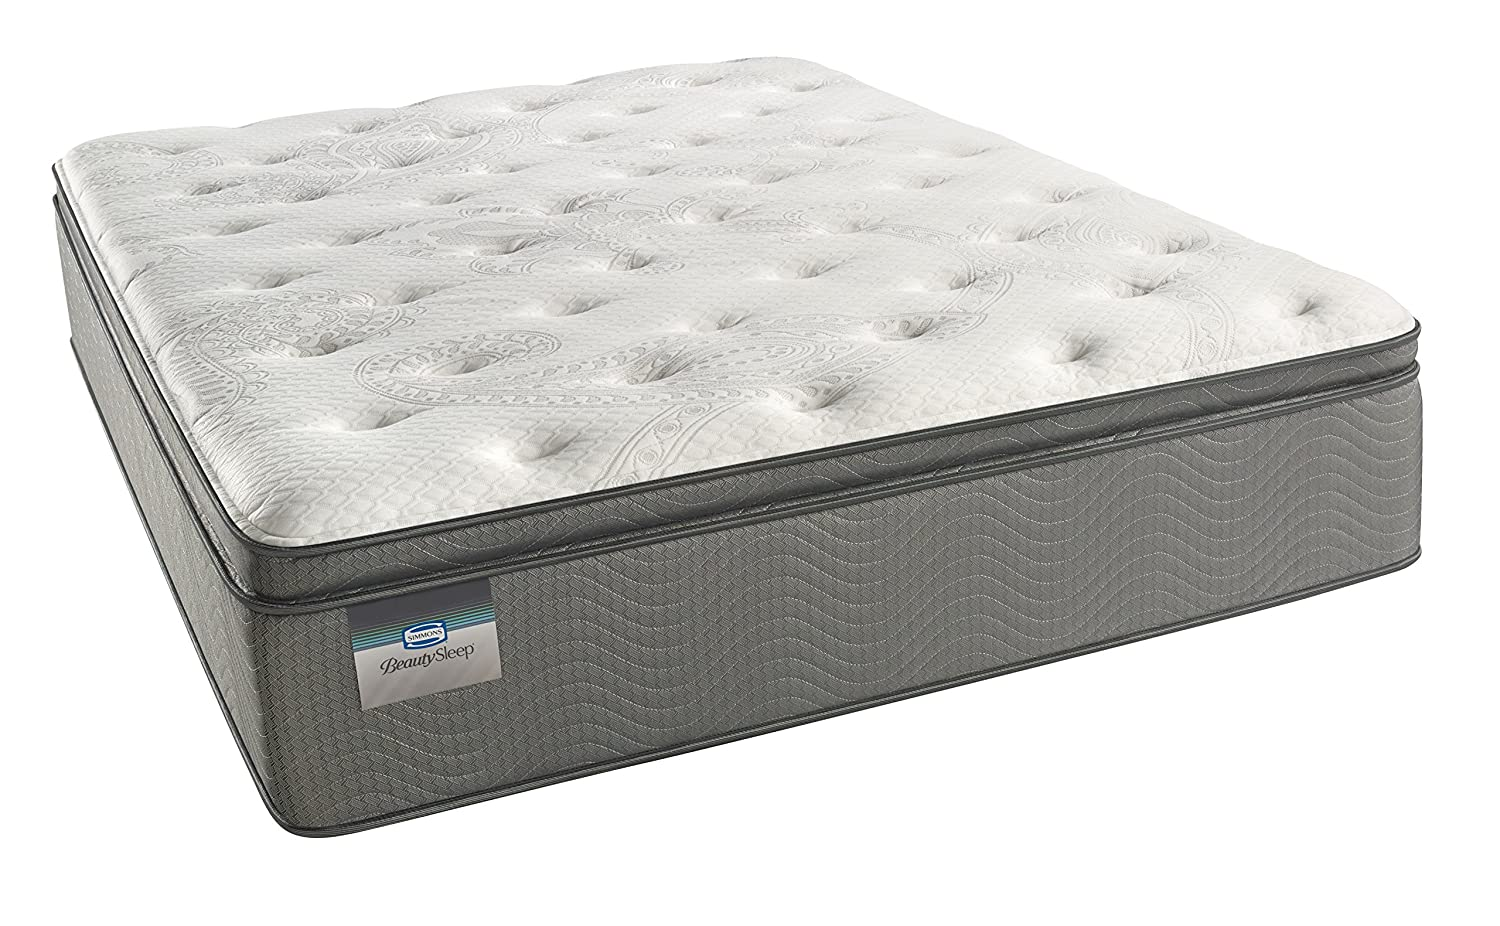 Simmons Beautysleep Plush Pillow Top 450 Queen